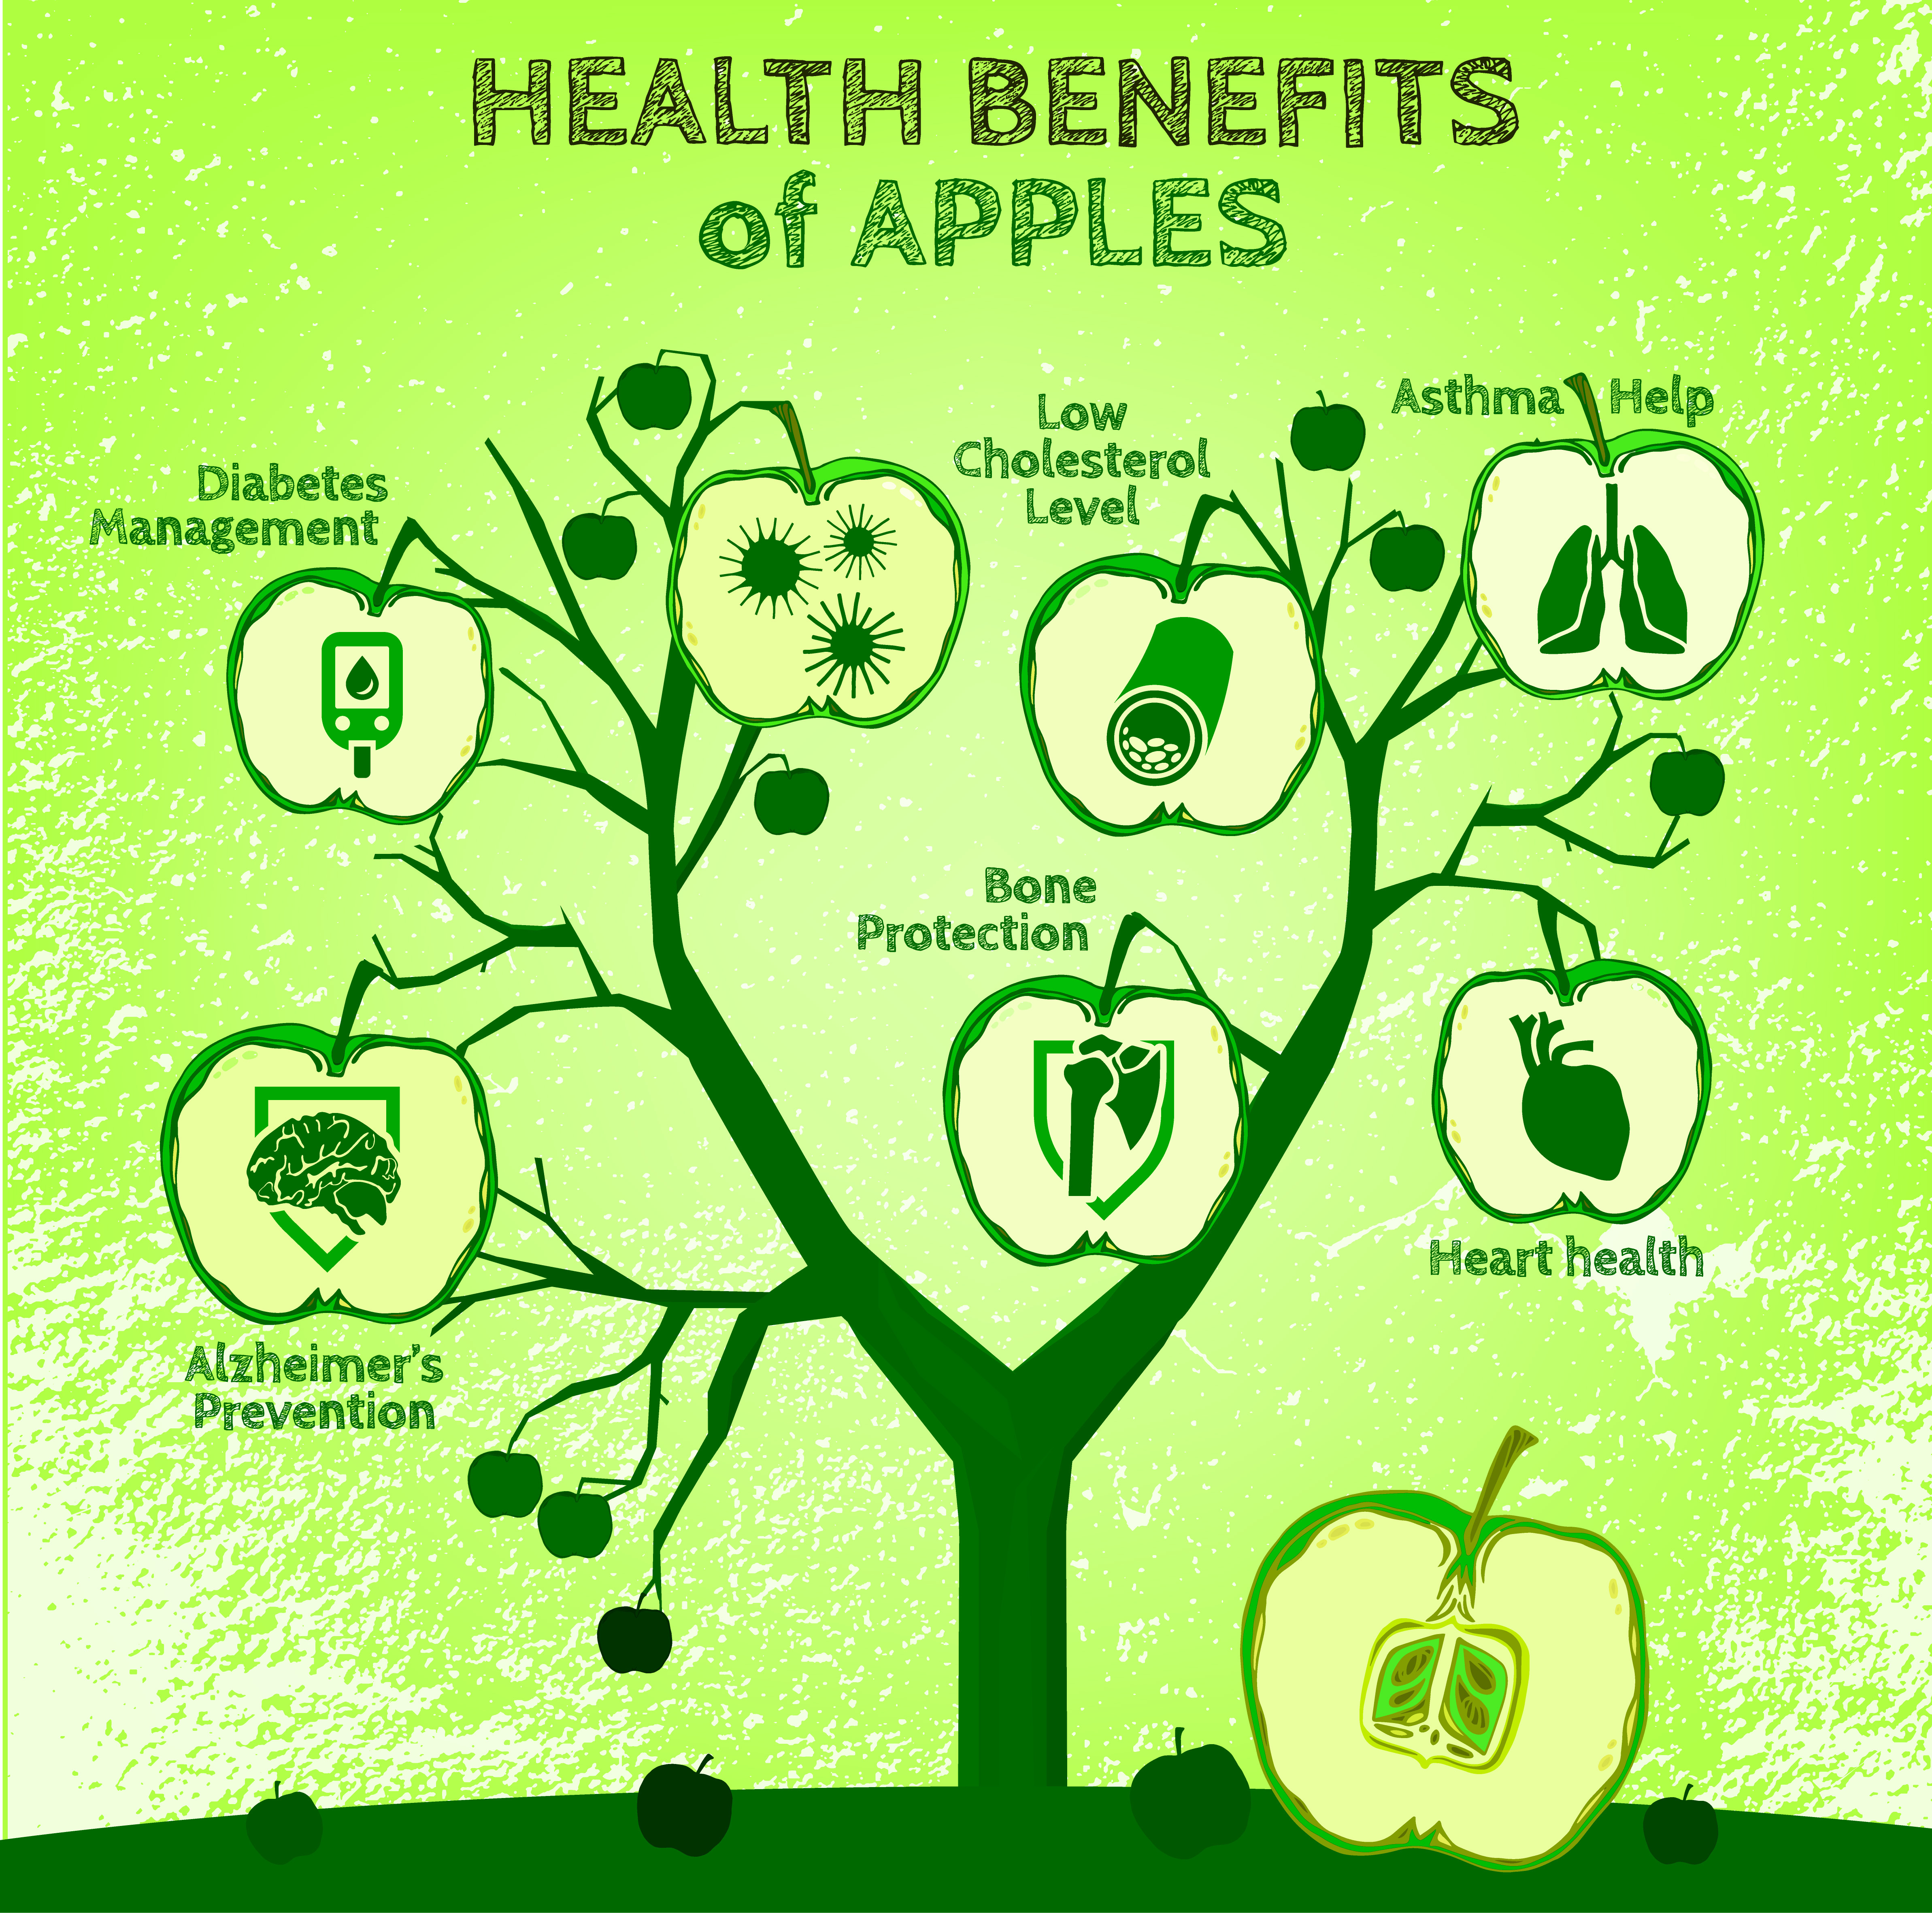 Most important benefits of apples